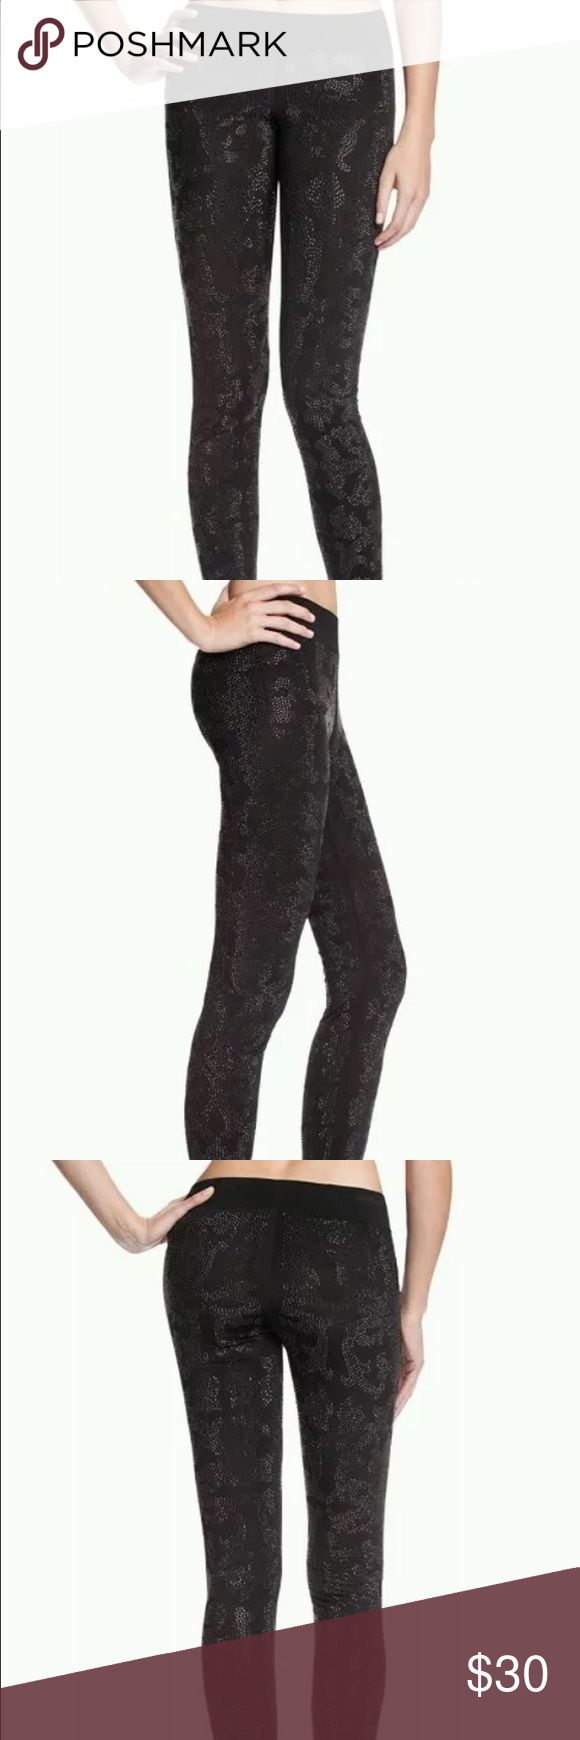 Guess Marciano black lace leggings s Stretchy guess Marciano leggings lace print size small Guess Pants Leggings